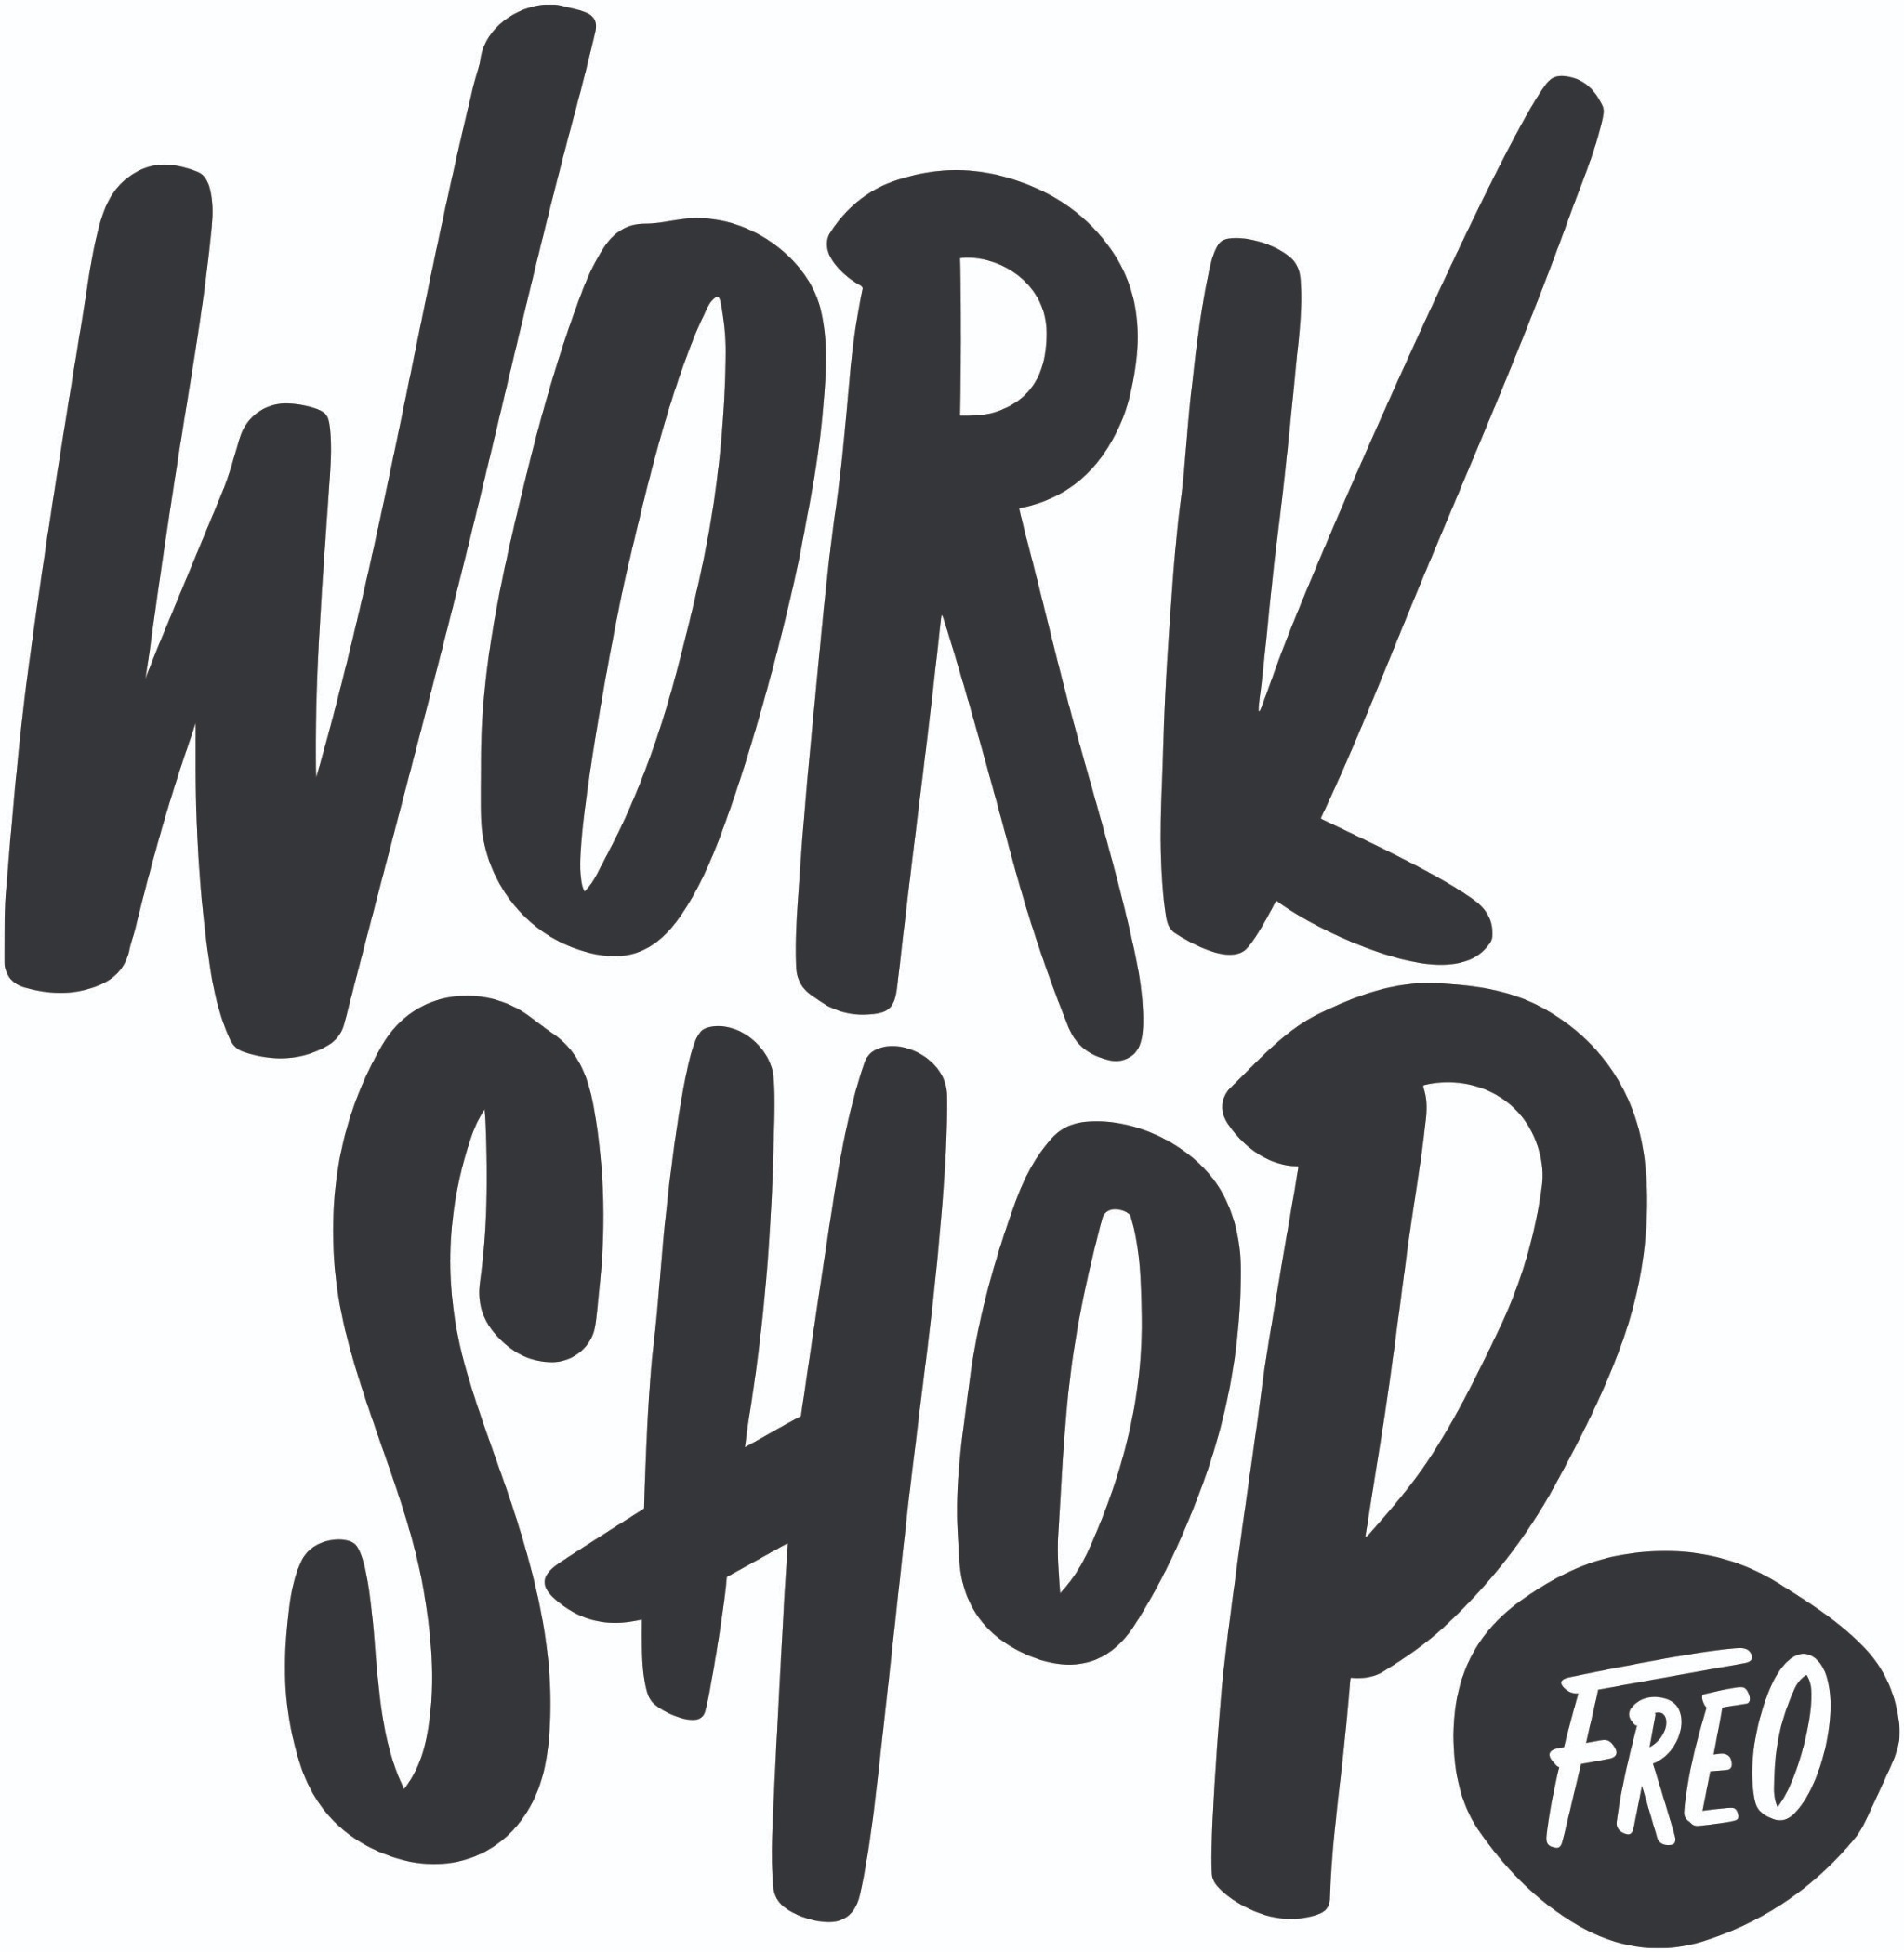 Workshop Freo